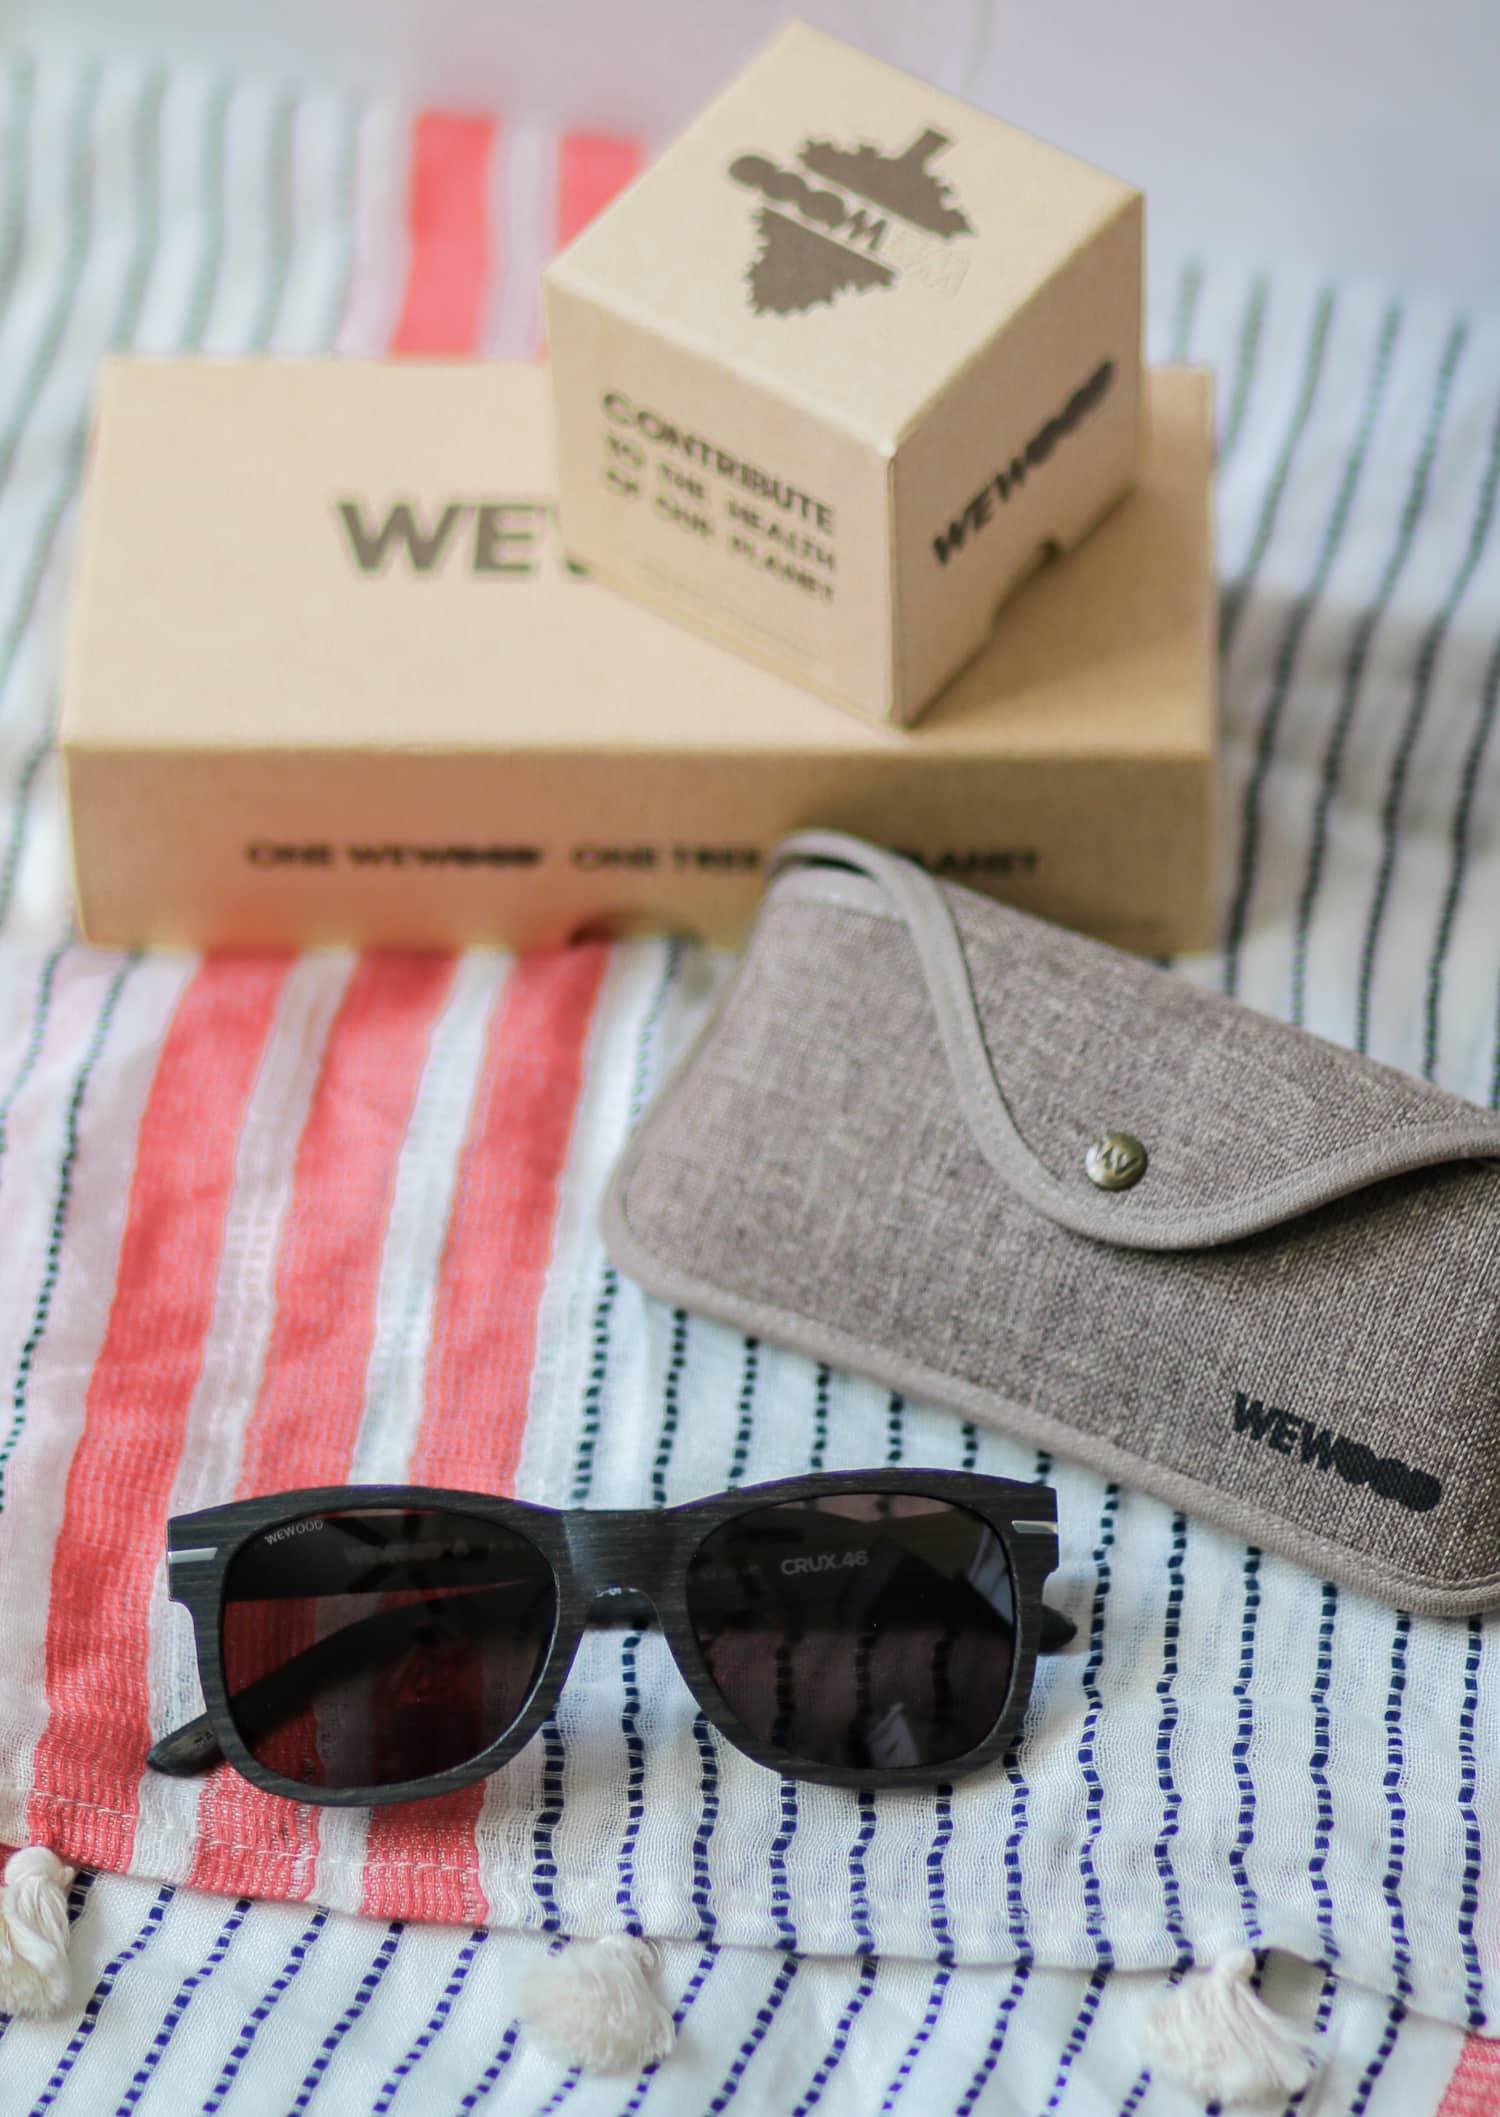 37ba8271f07 Looking for the perfect Father s Day present for your Dad or husband   WeWood sunglasses are